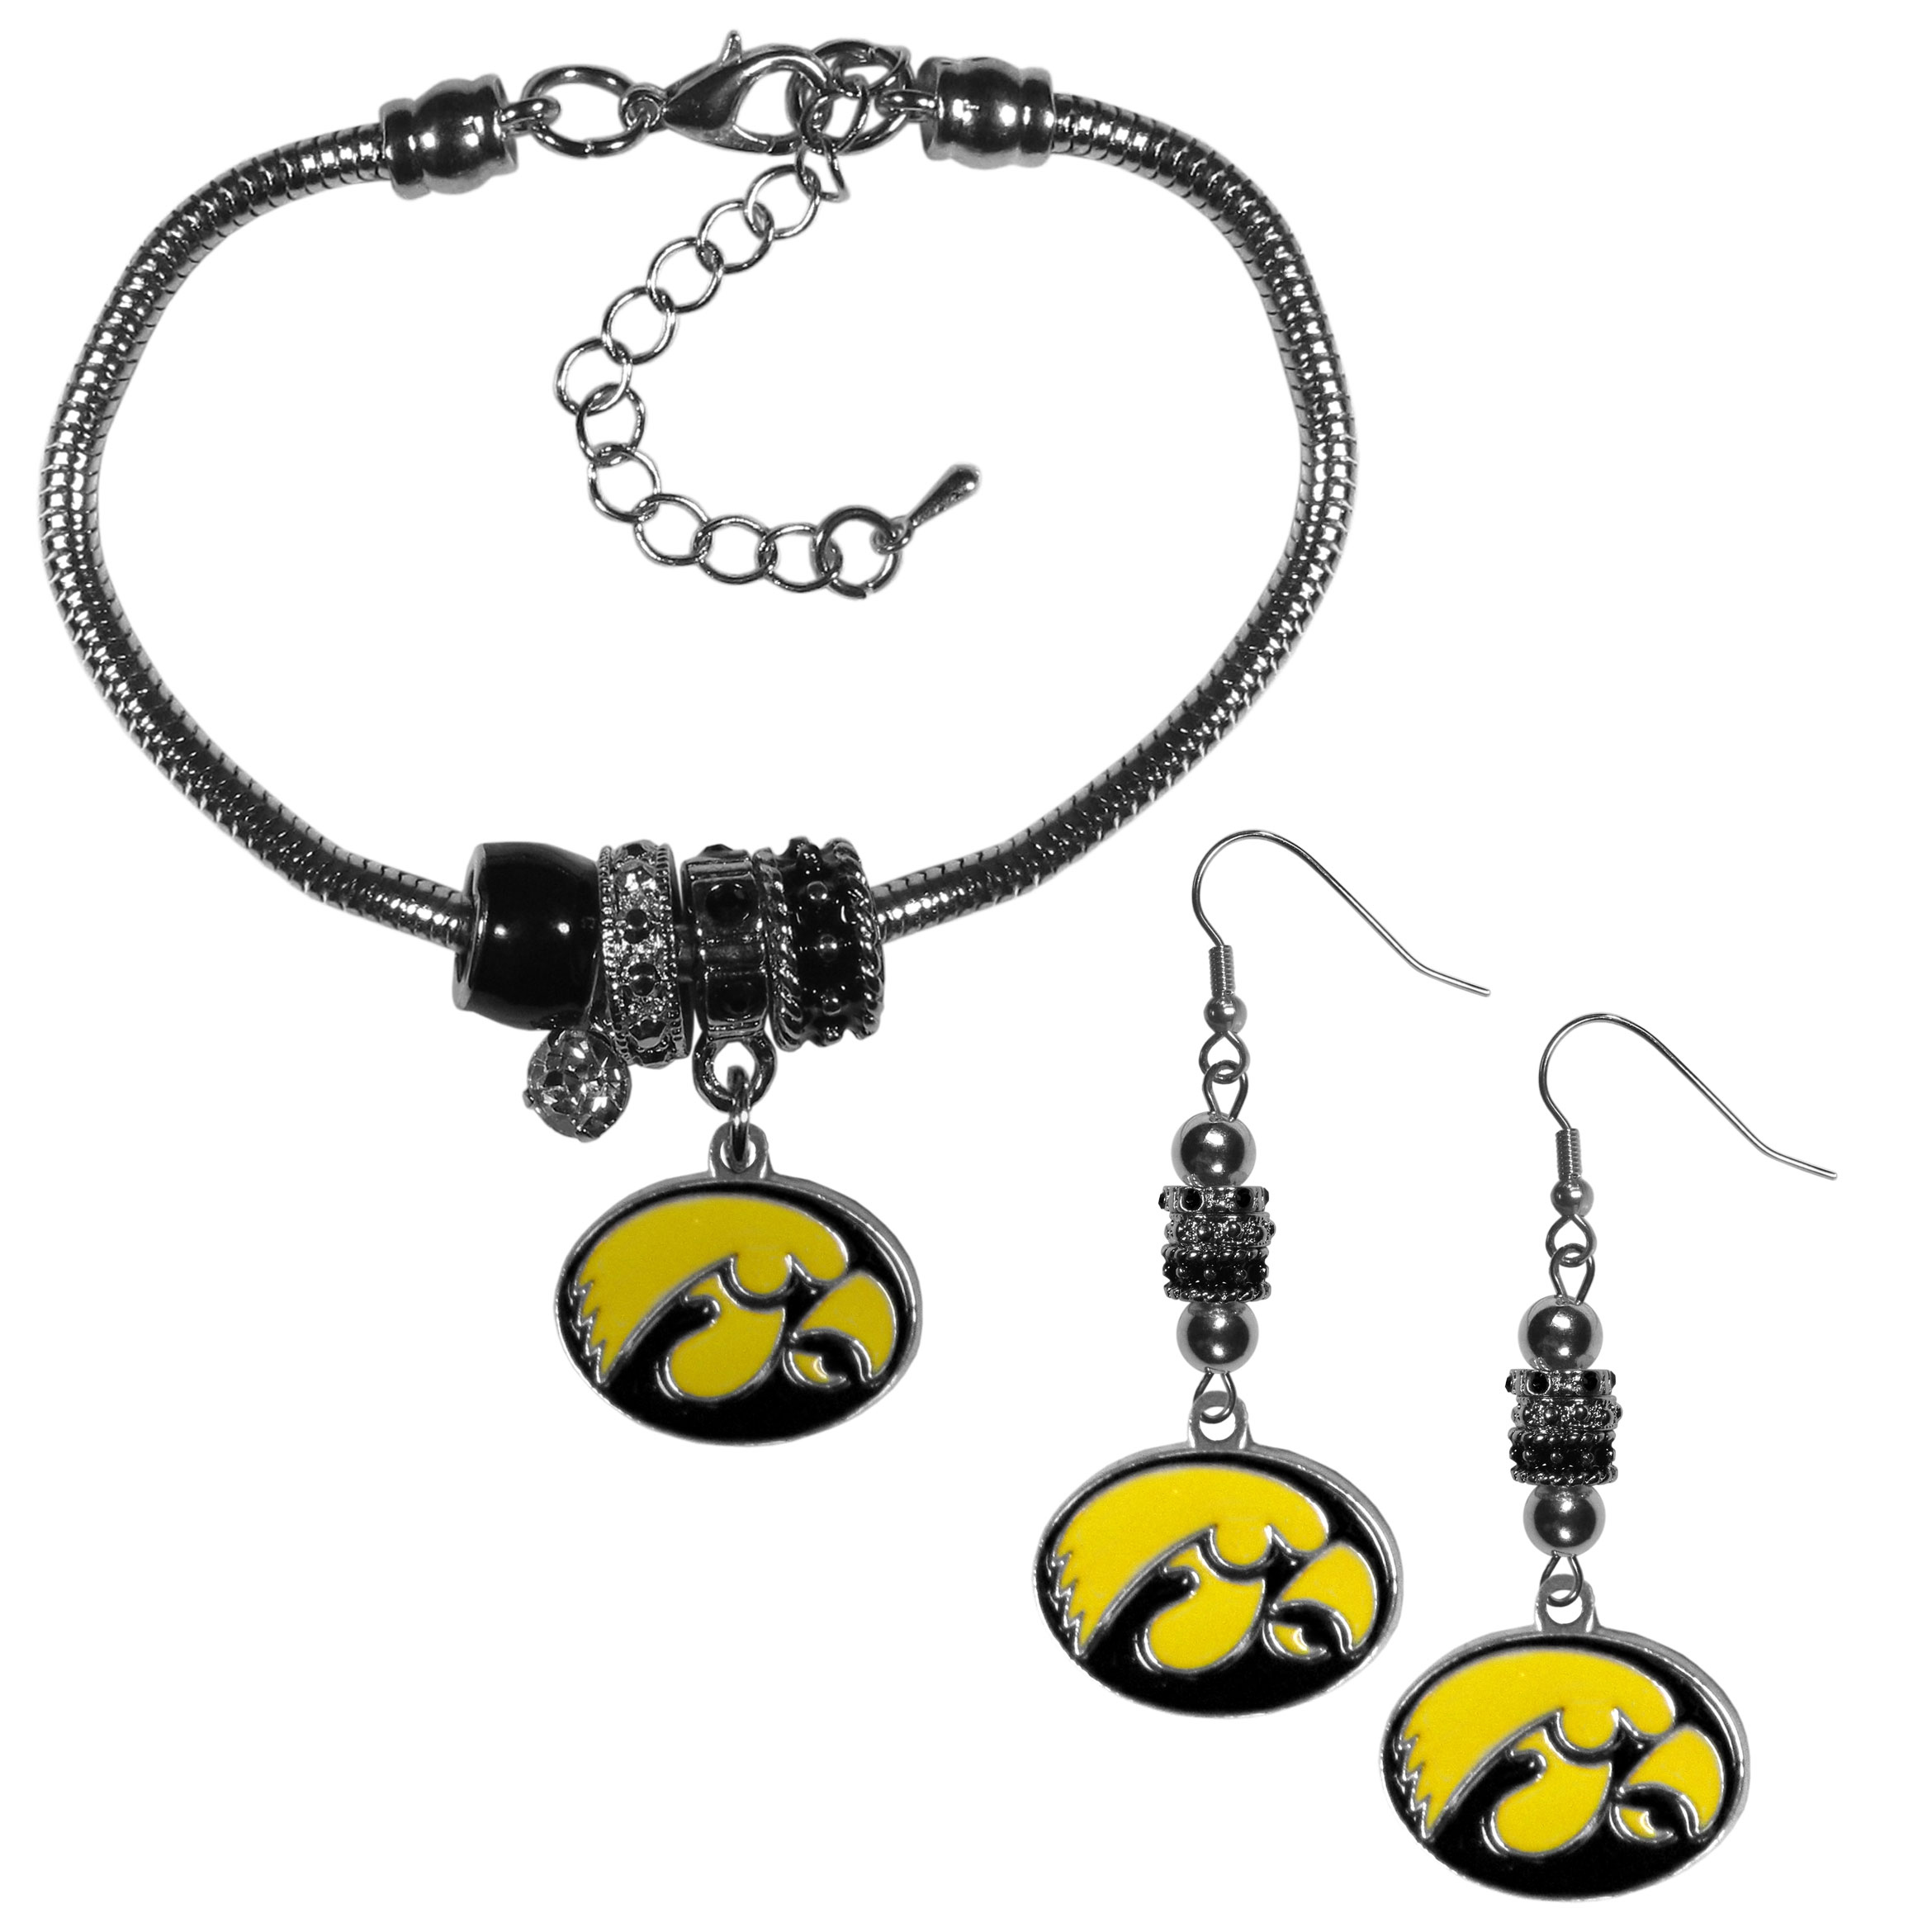 Iowa Hawkeyes Euro Bead Earrings and Bracelet Set - We combine the popular Euro bead style with your love of the Iowa Hawkeyes with this beautiful jewelry set that includes earrings and a matching bracelet. The stylish earrings feature hypoallergenic, nickel free fishhook posts and 3 team colored Euro beads and a metal team charm. The matching snake chain bracelet is 7.5 inches long with a 2 inch extender and 4 Euro beads with a rhinestone charm and team charm.